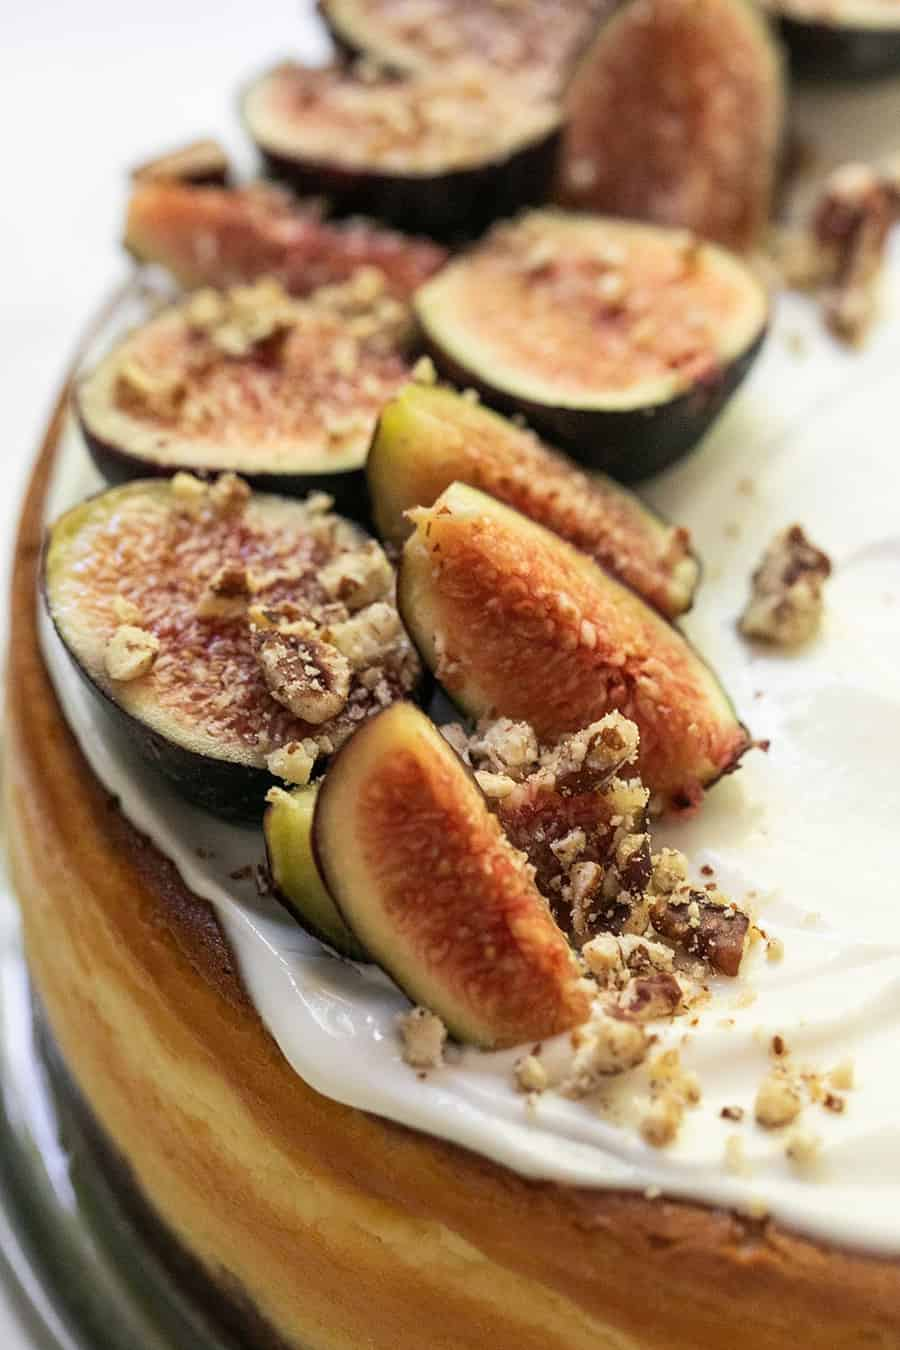 Figs on a cheesecake.